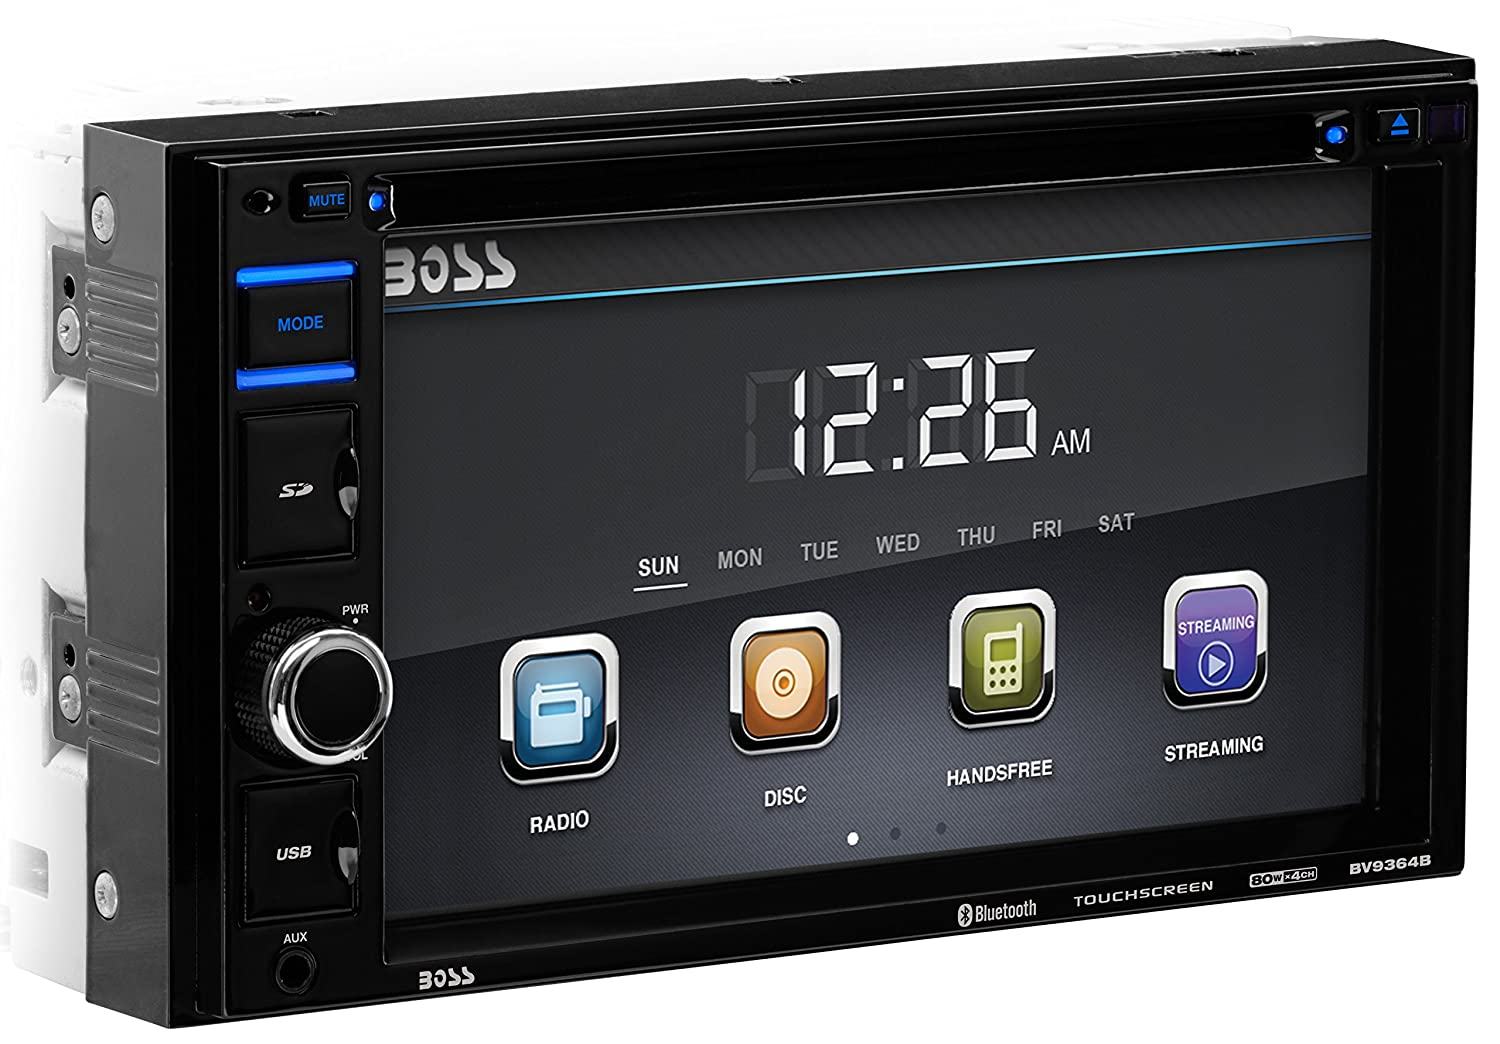 amazon com boss audio bv9364b car stereo dvd player double din